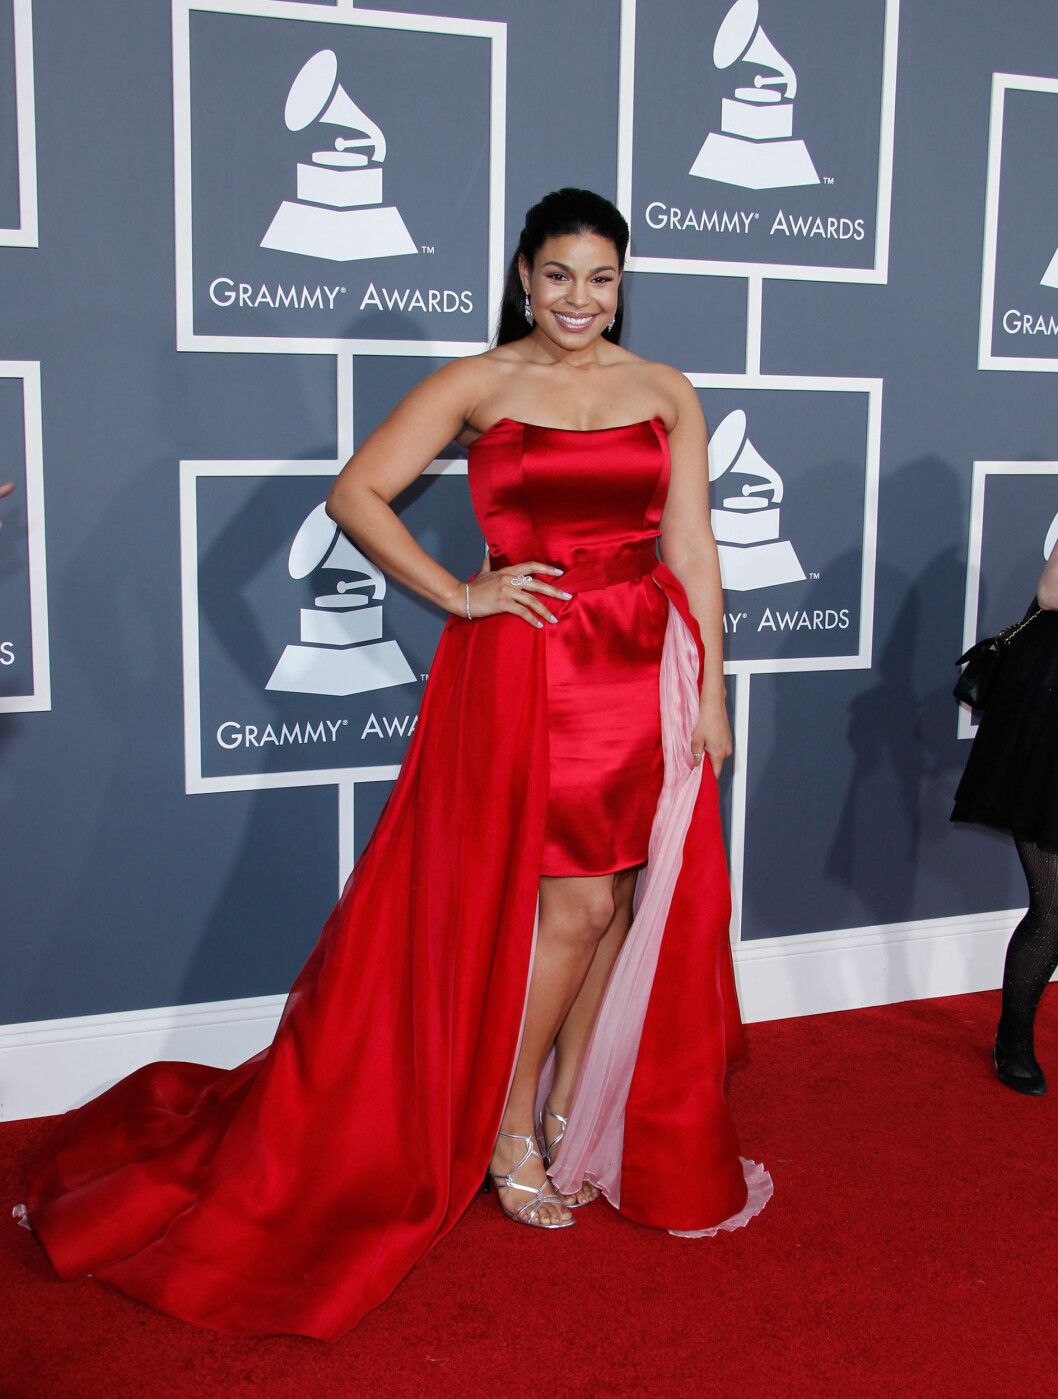 <strong>LADY IN RED:</strong> Sangerinnen Jordin Sparks kom i kjole fra merket Zang Toi. Foto: All Over Press